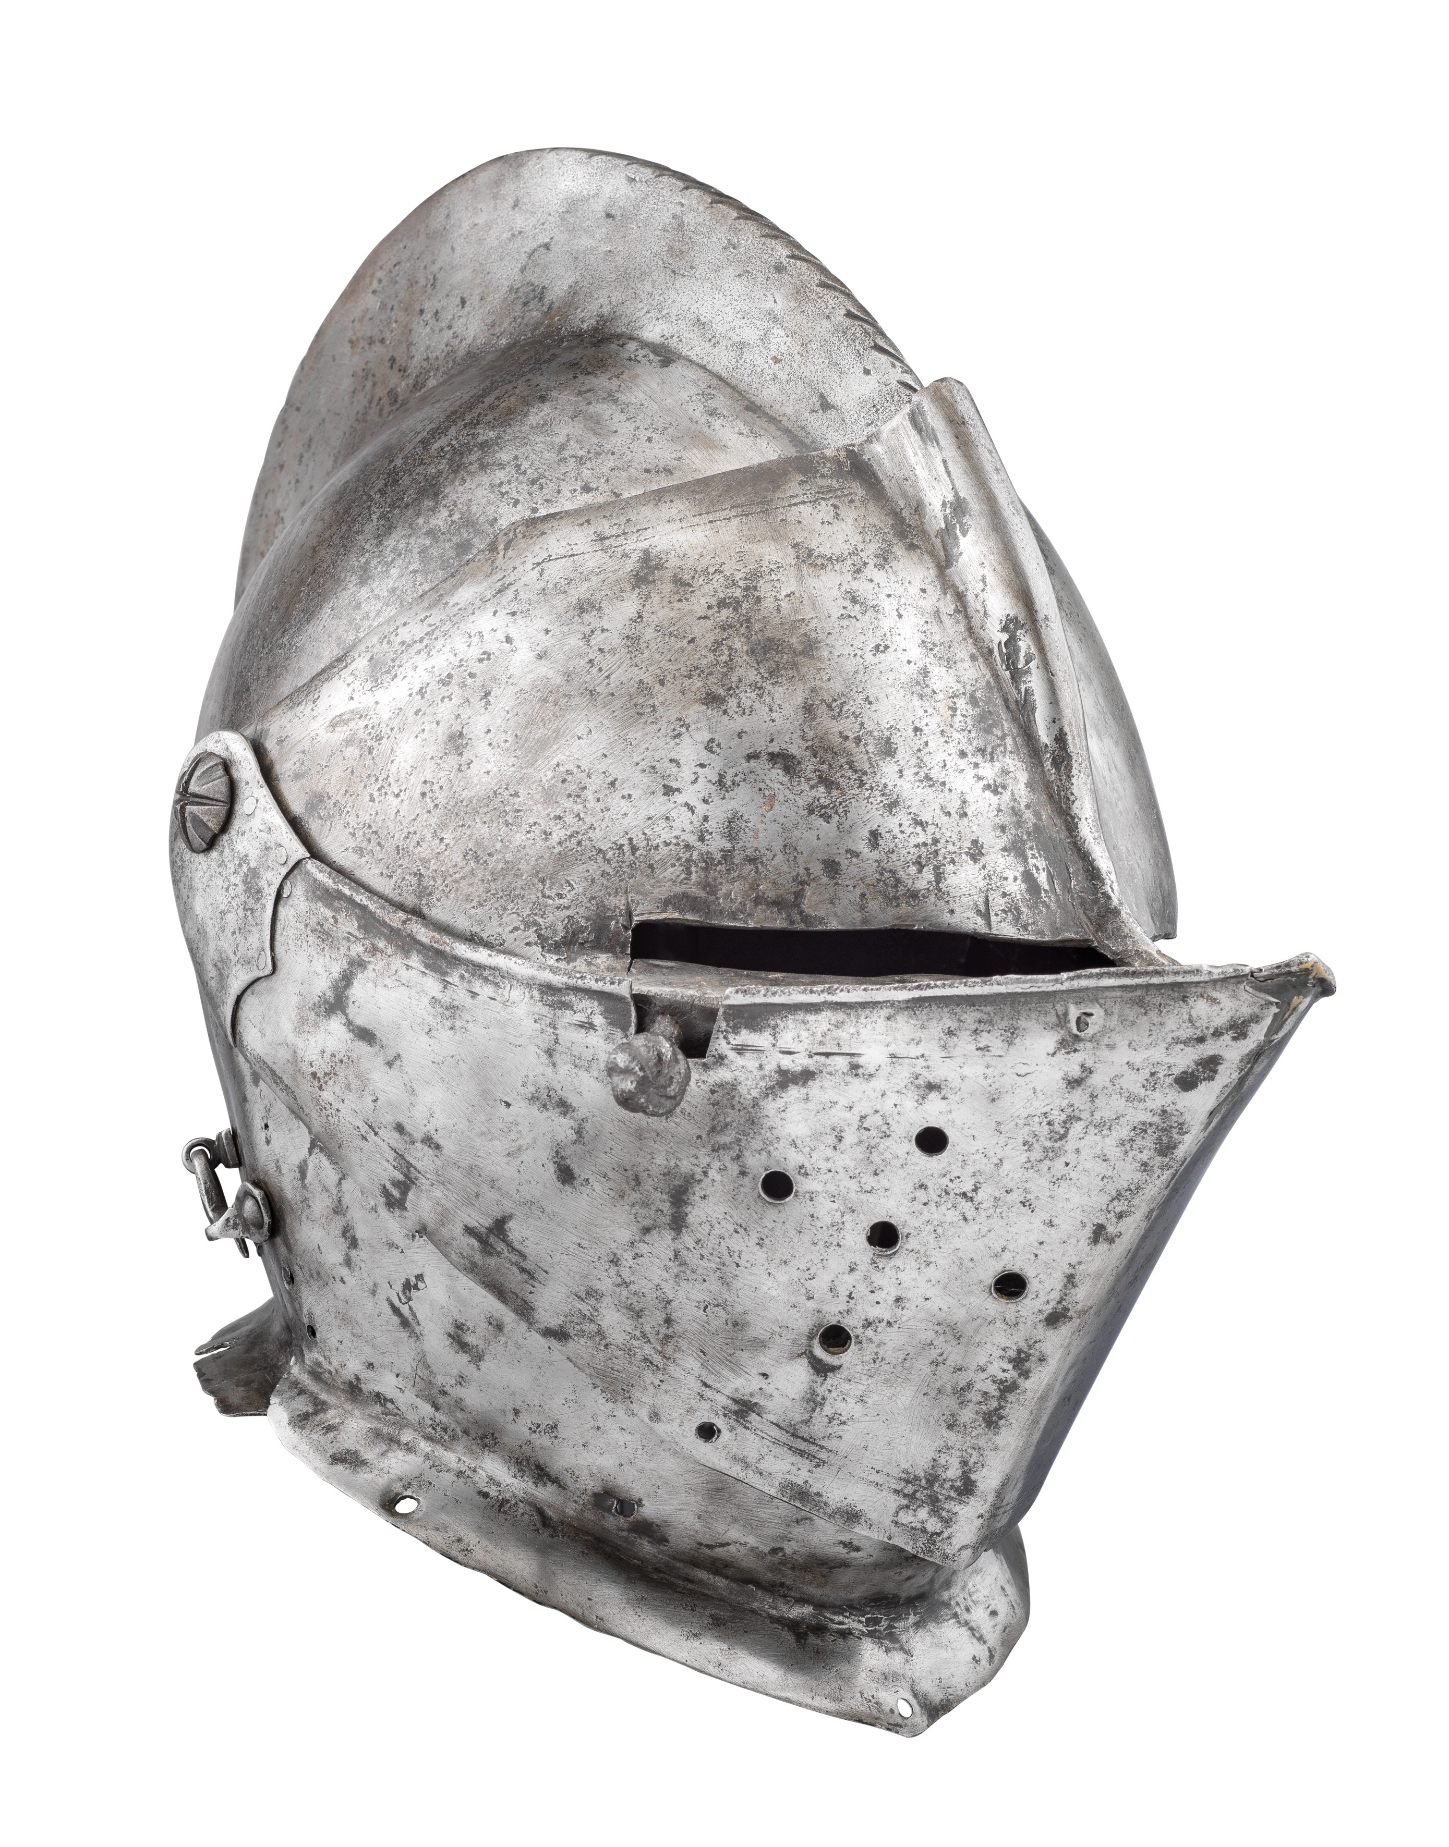 ‡ A COMPOSITE CLOSE HELMET FOR FIELD USE^ LATE 16TH CENTURY